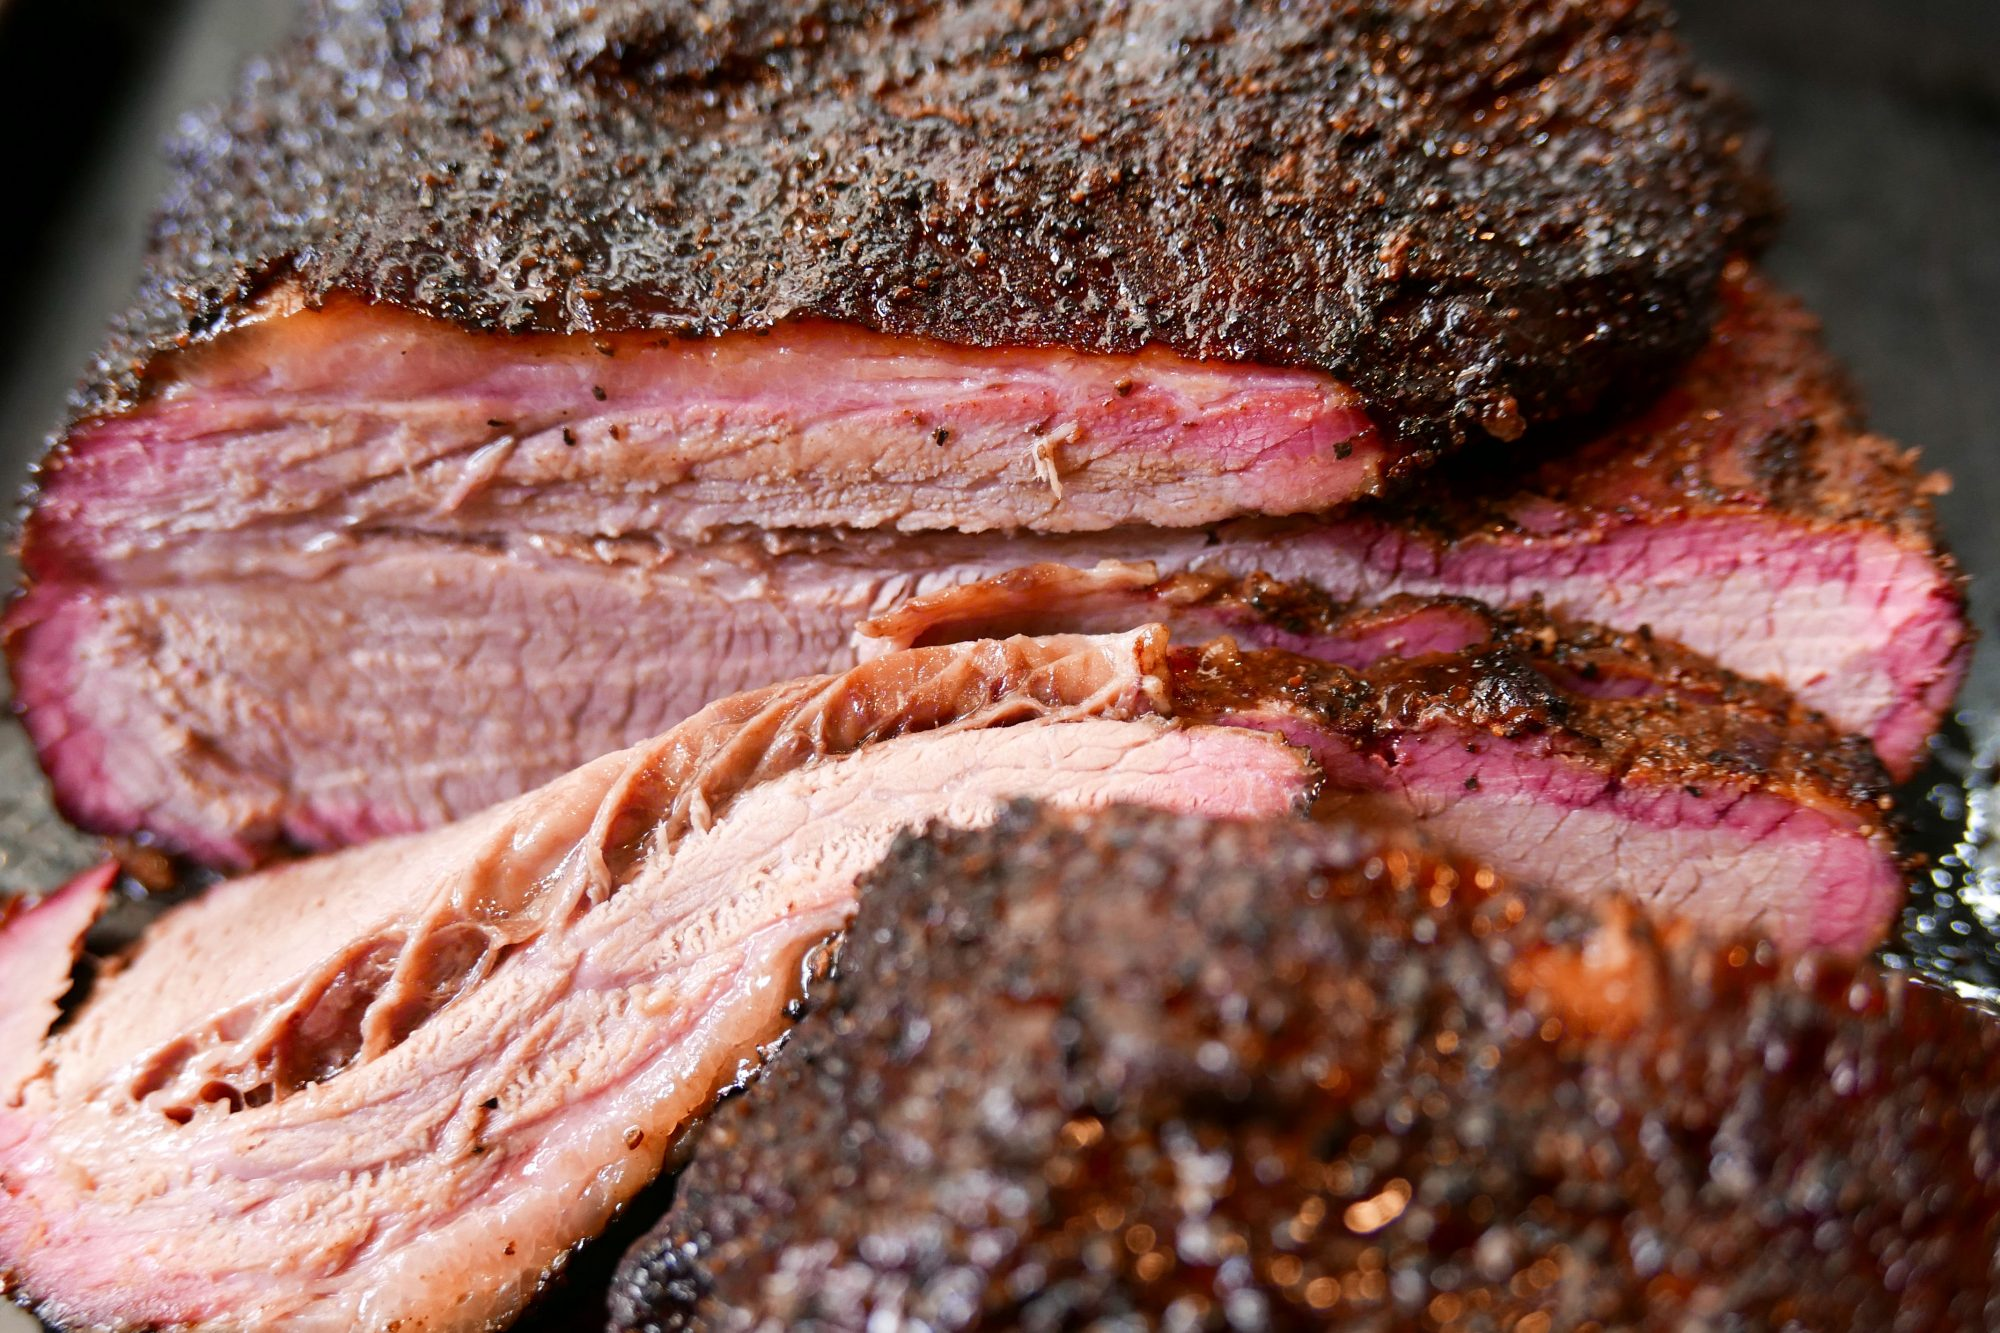 Bad News, Y'all: The Price of Brisket Is Climbing